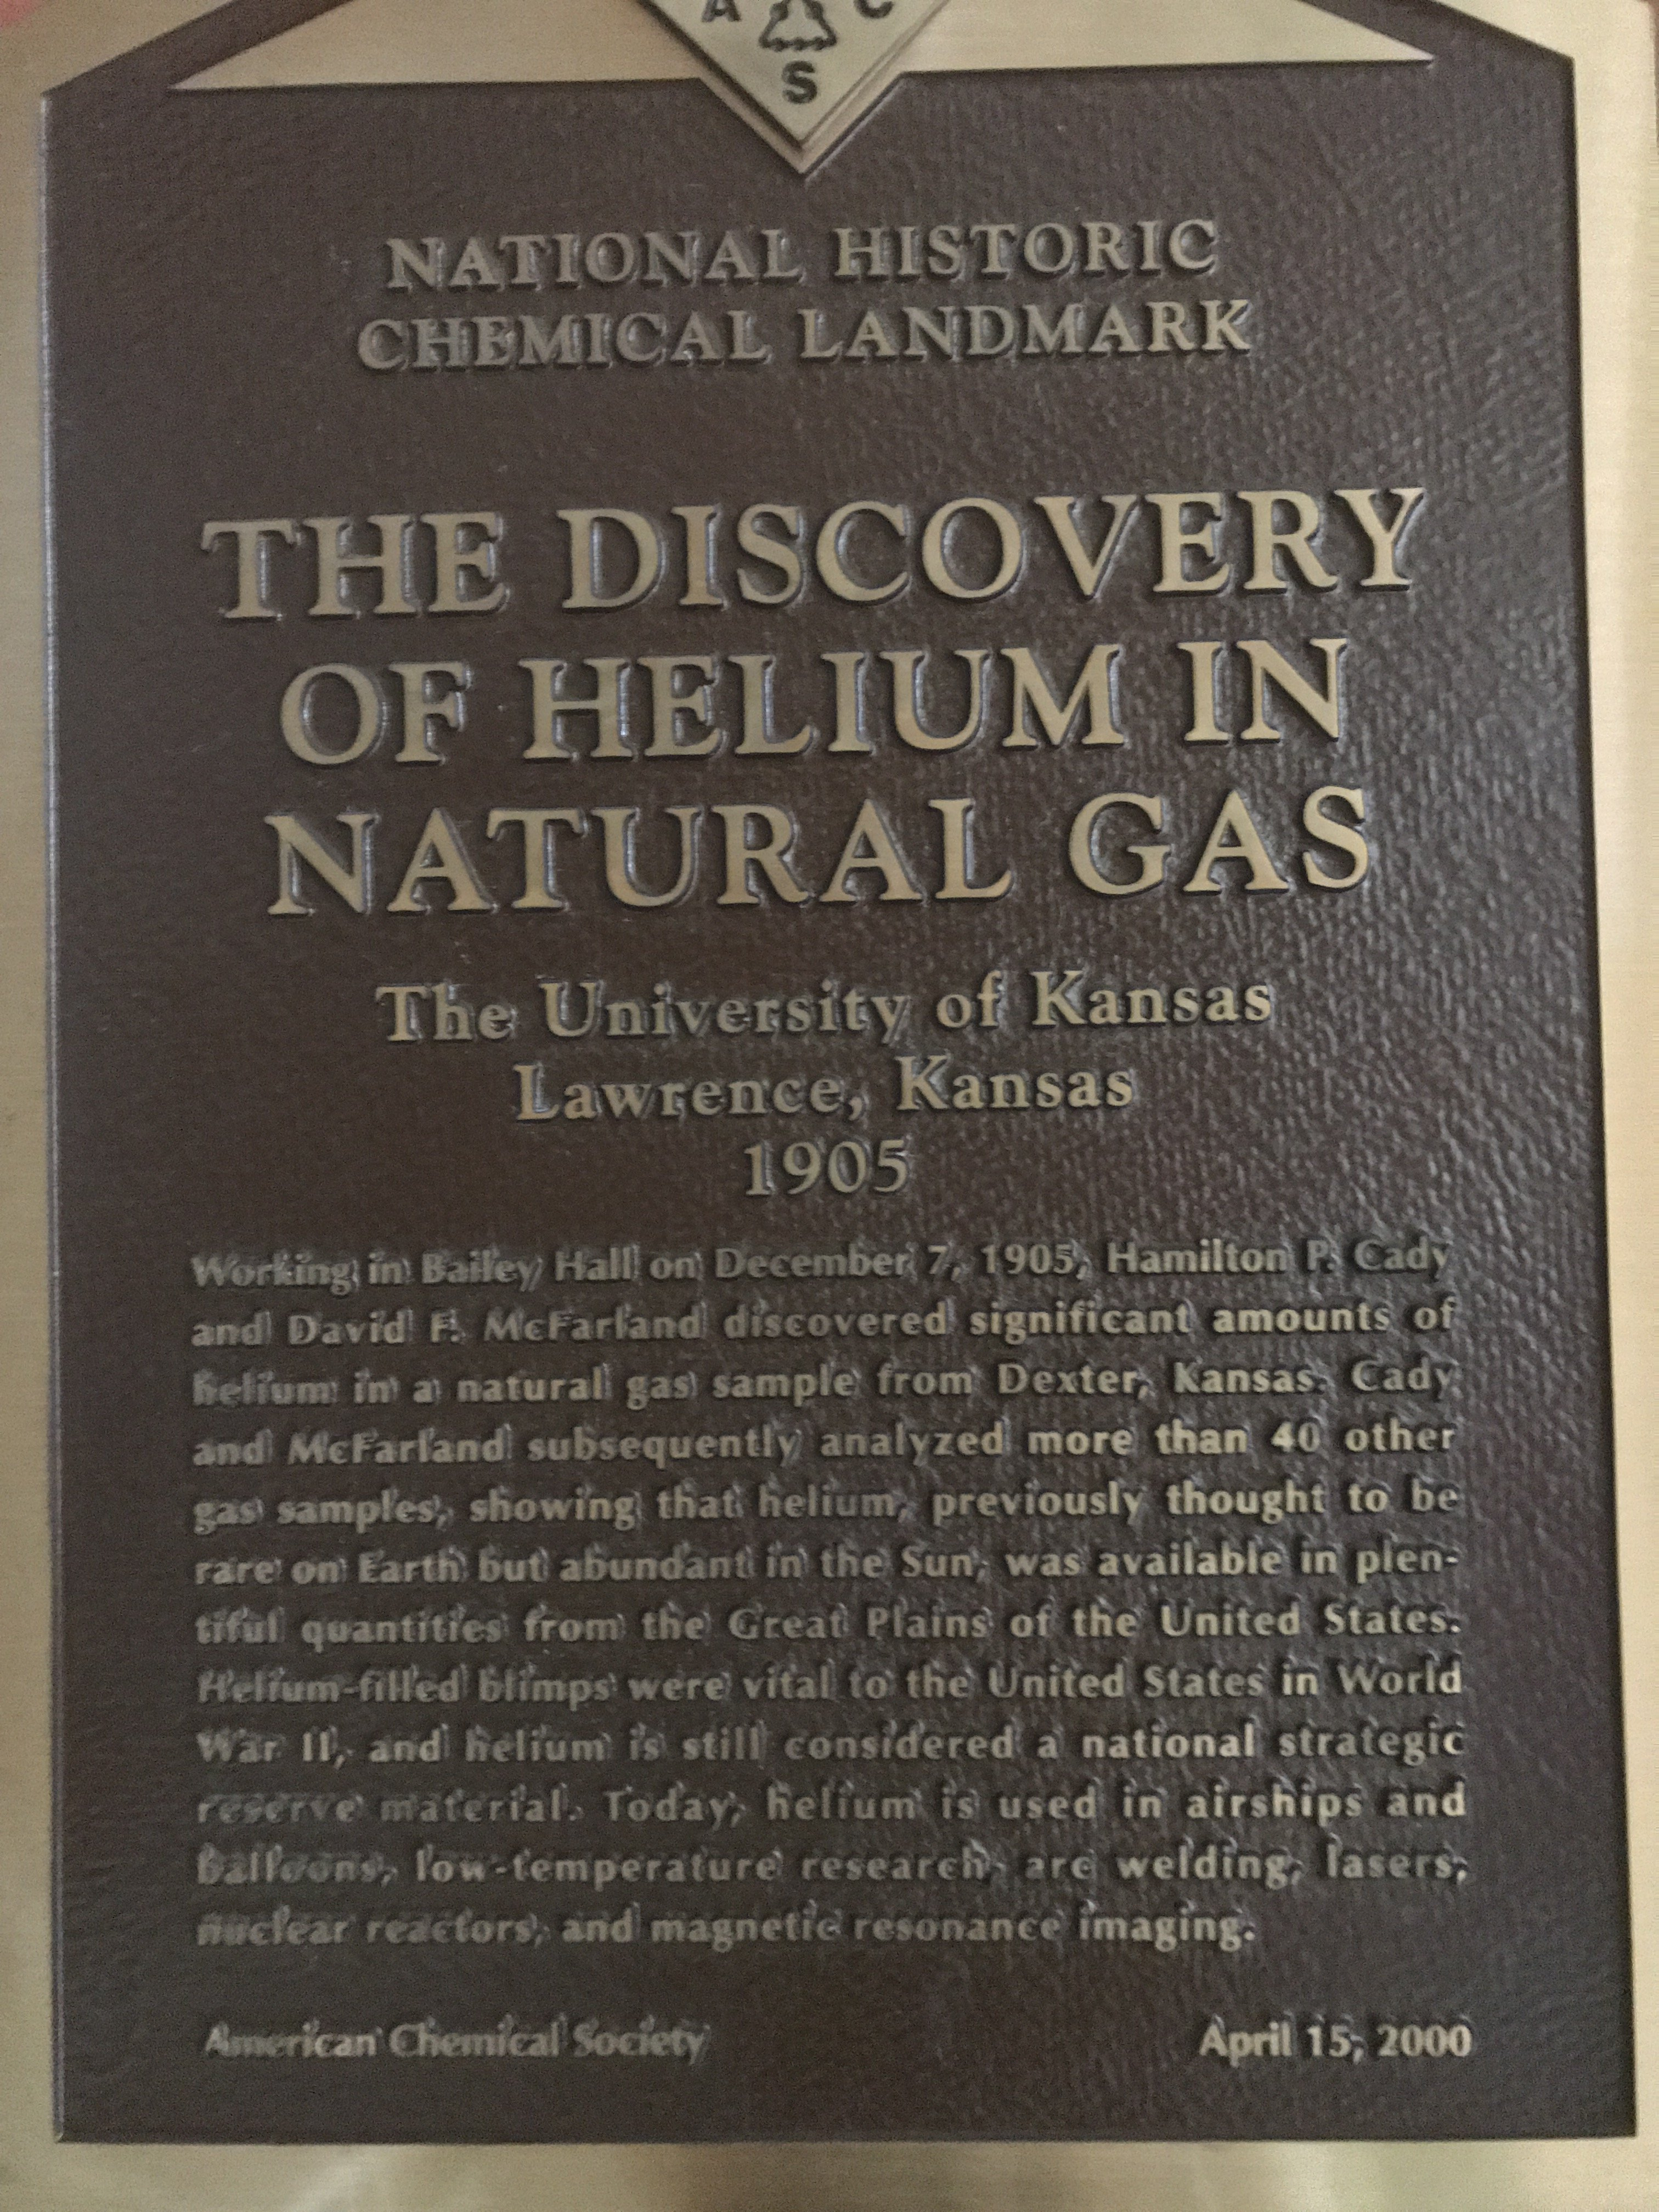 A plaque celebrating the discovery of helium in natural gas from the American Chemical Society.